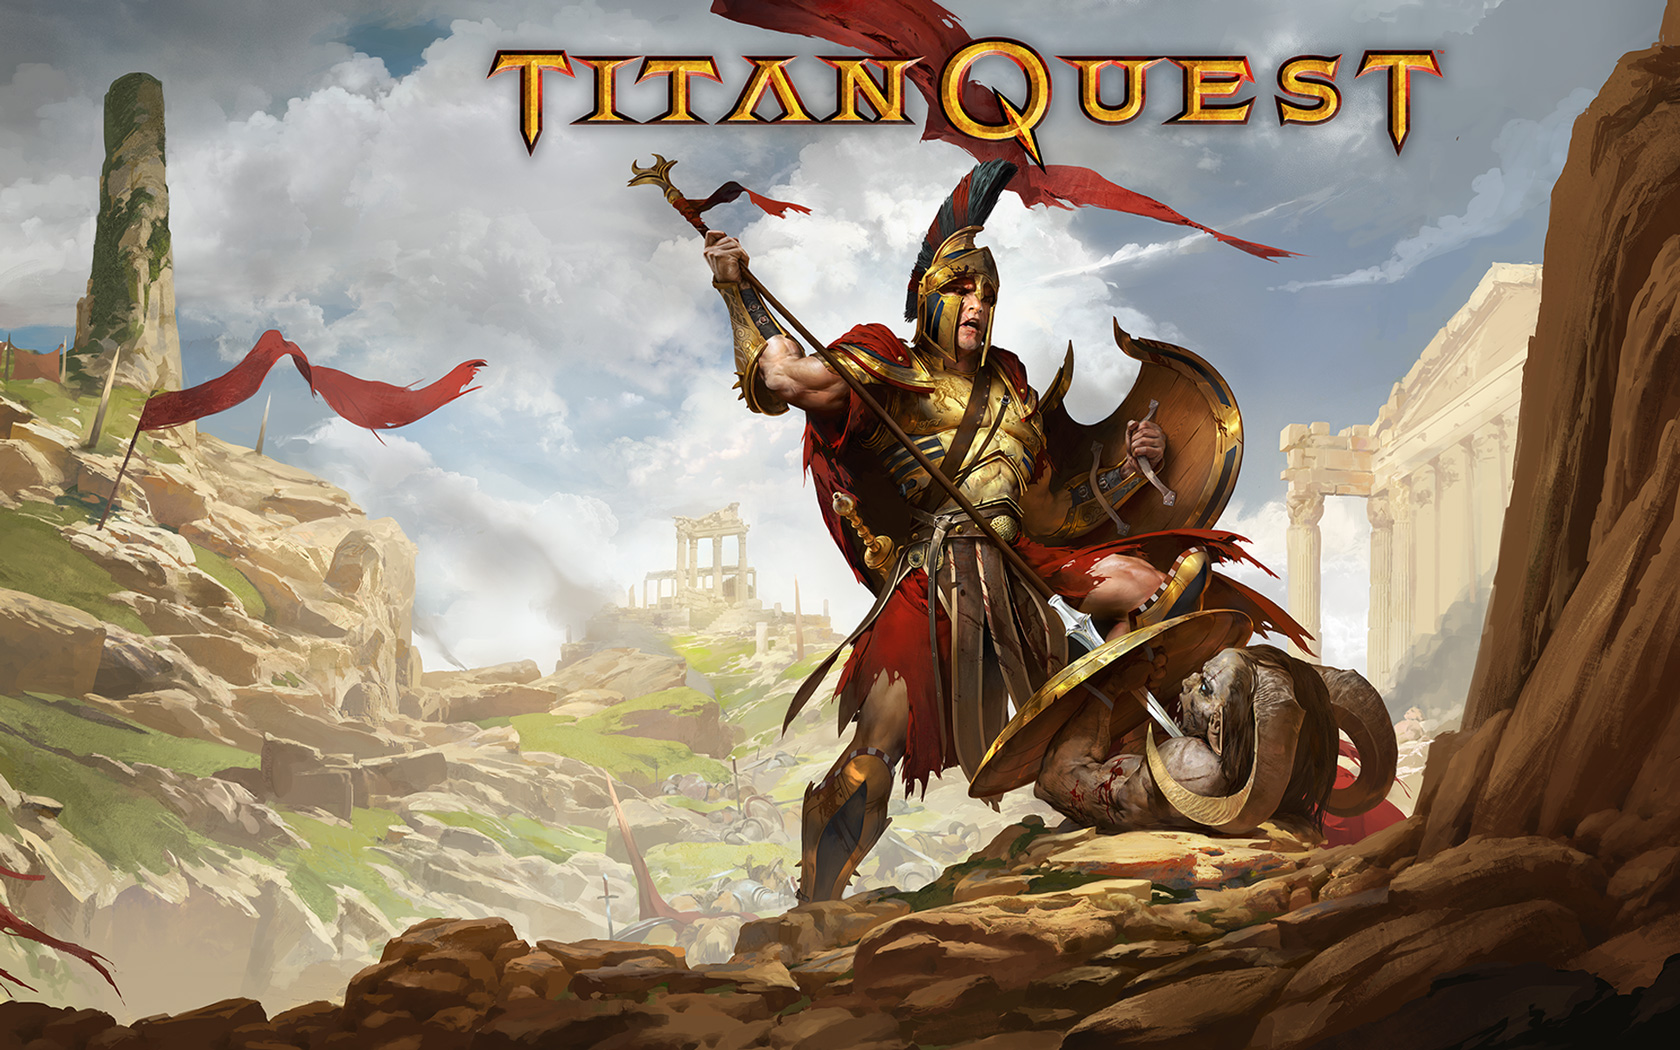 Titan Quest Wallpaper in 1680x1050